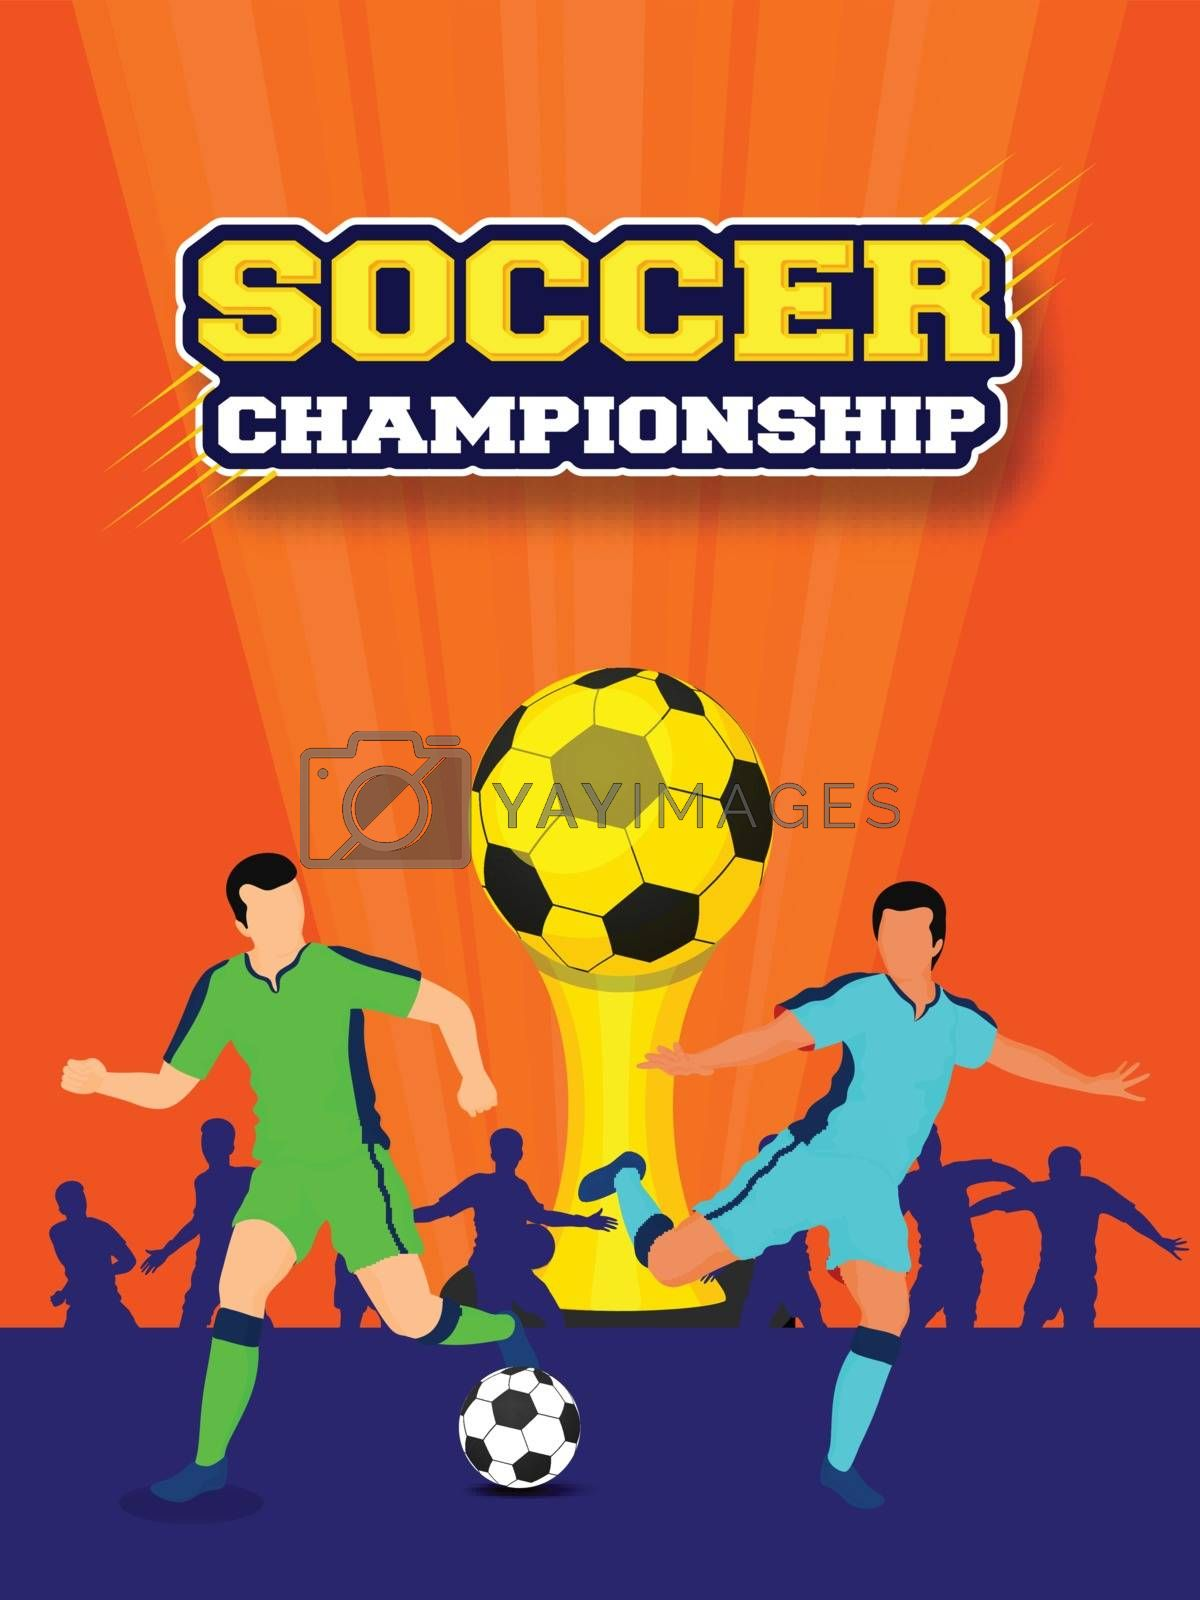 Royalty free image of Footballers character with champion trophy for Soccer Championsh by aispl